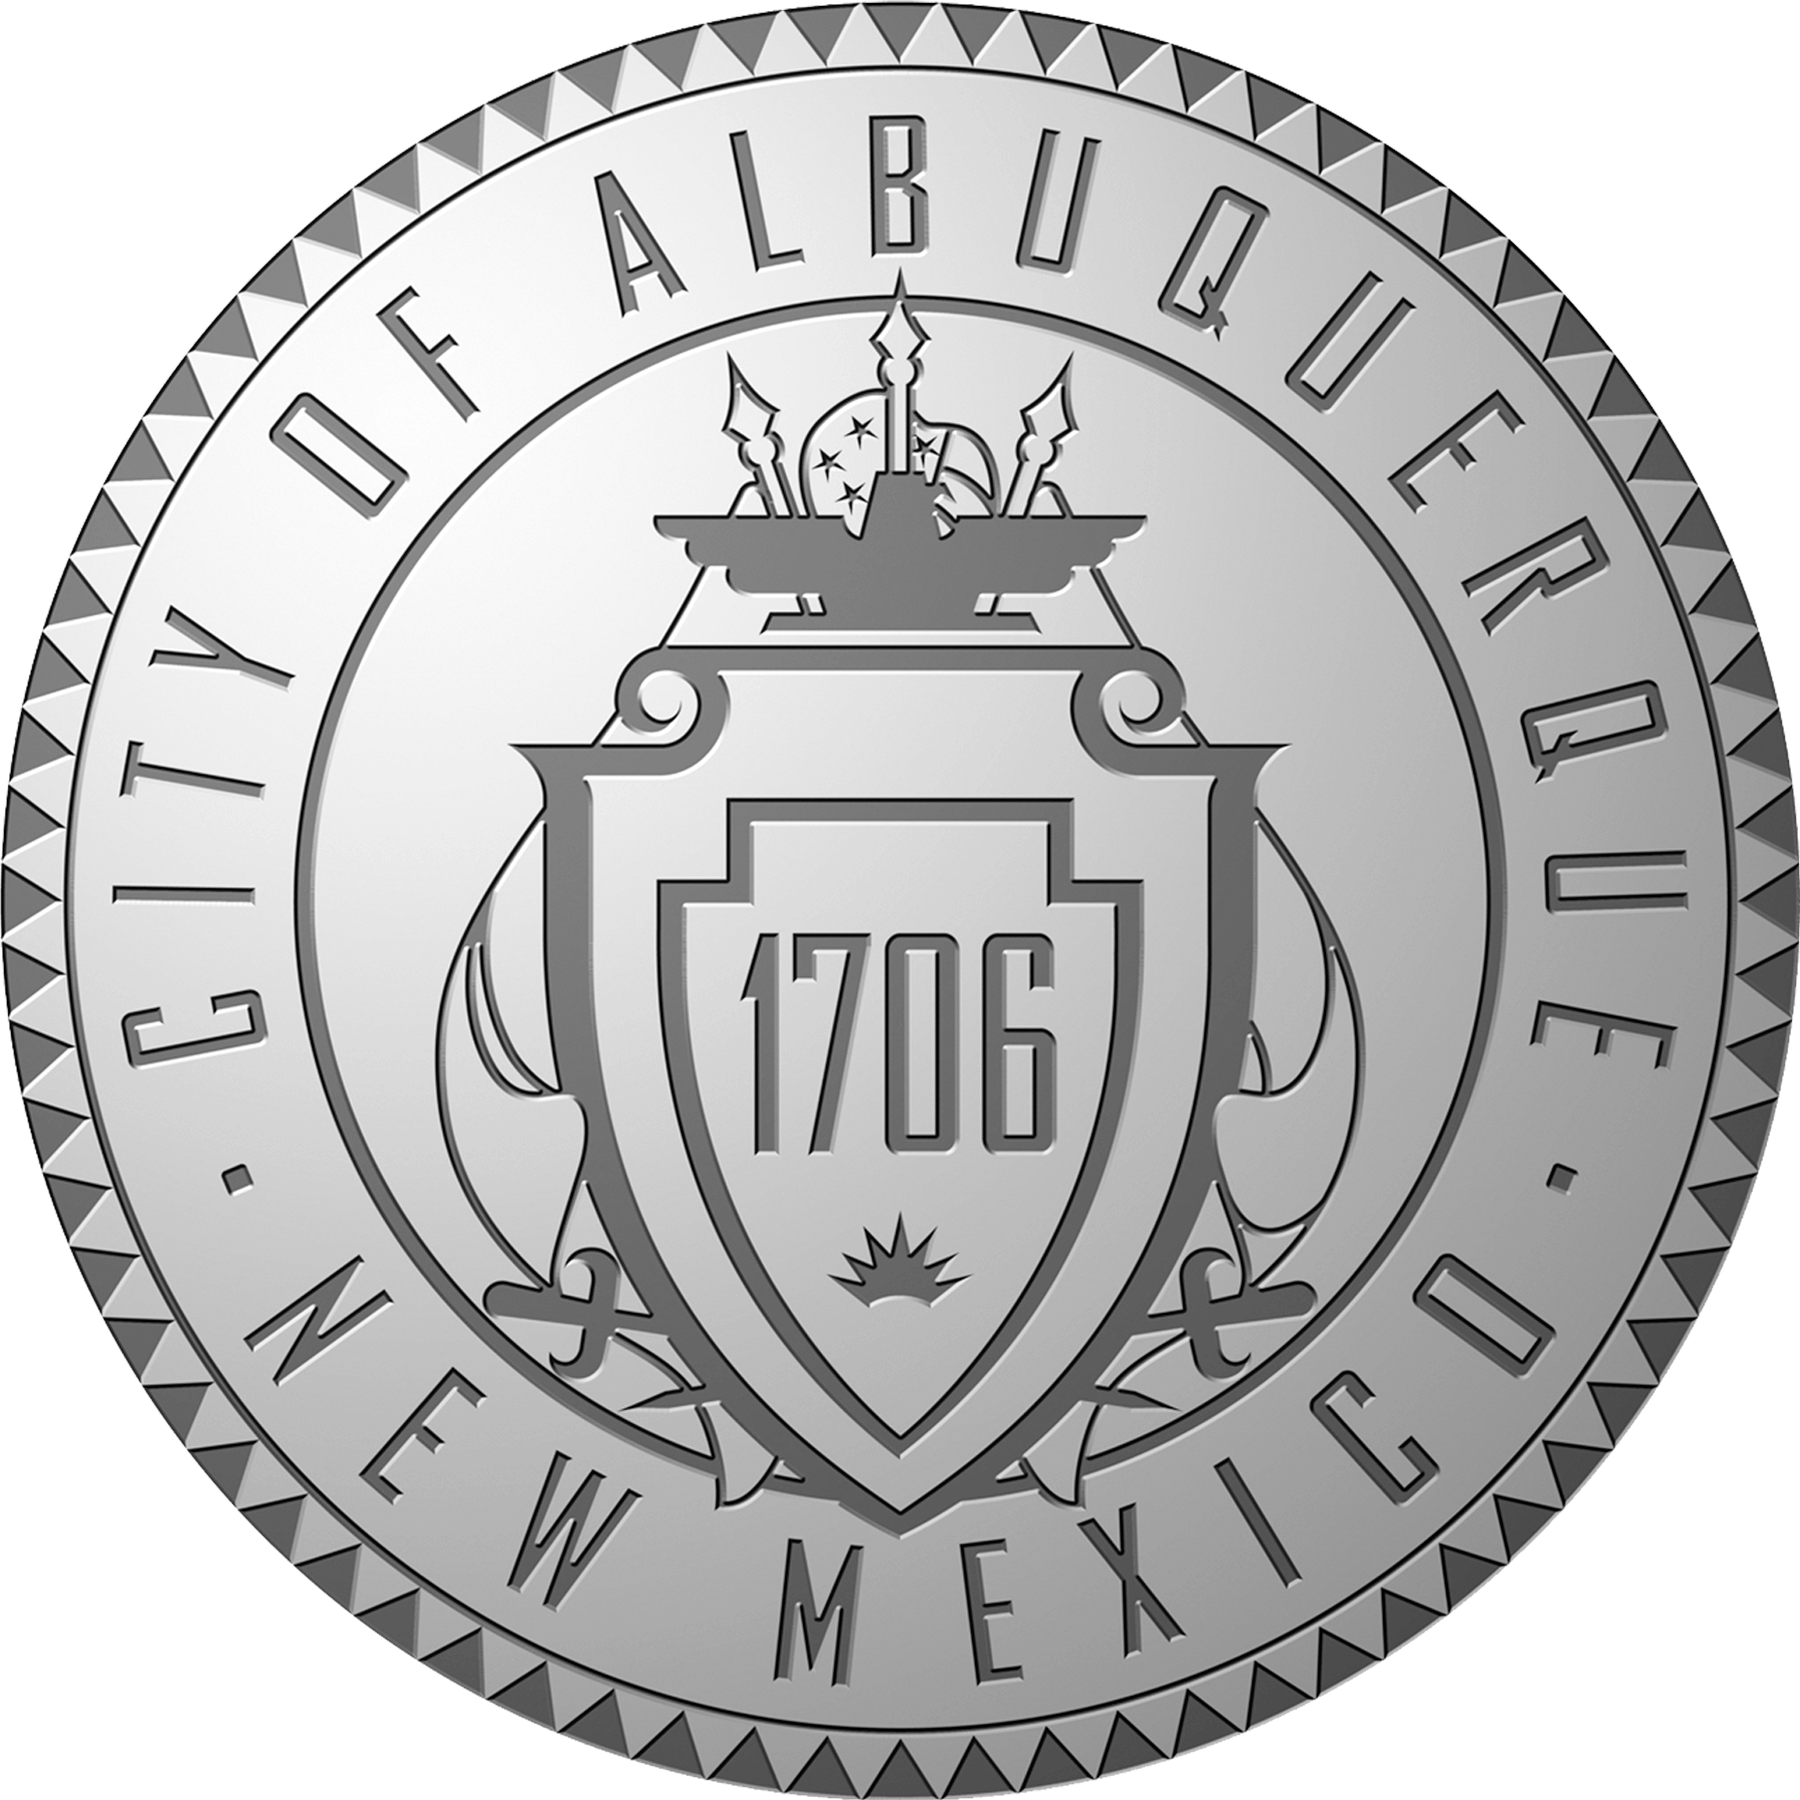 City of Albuquerque Medallion Logo